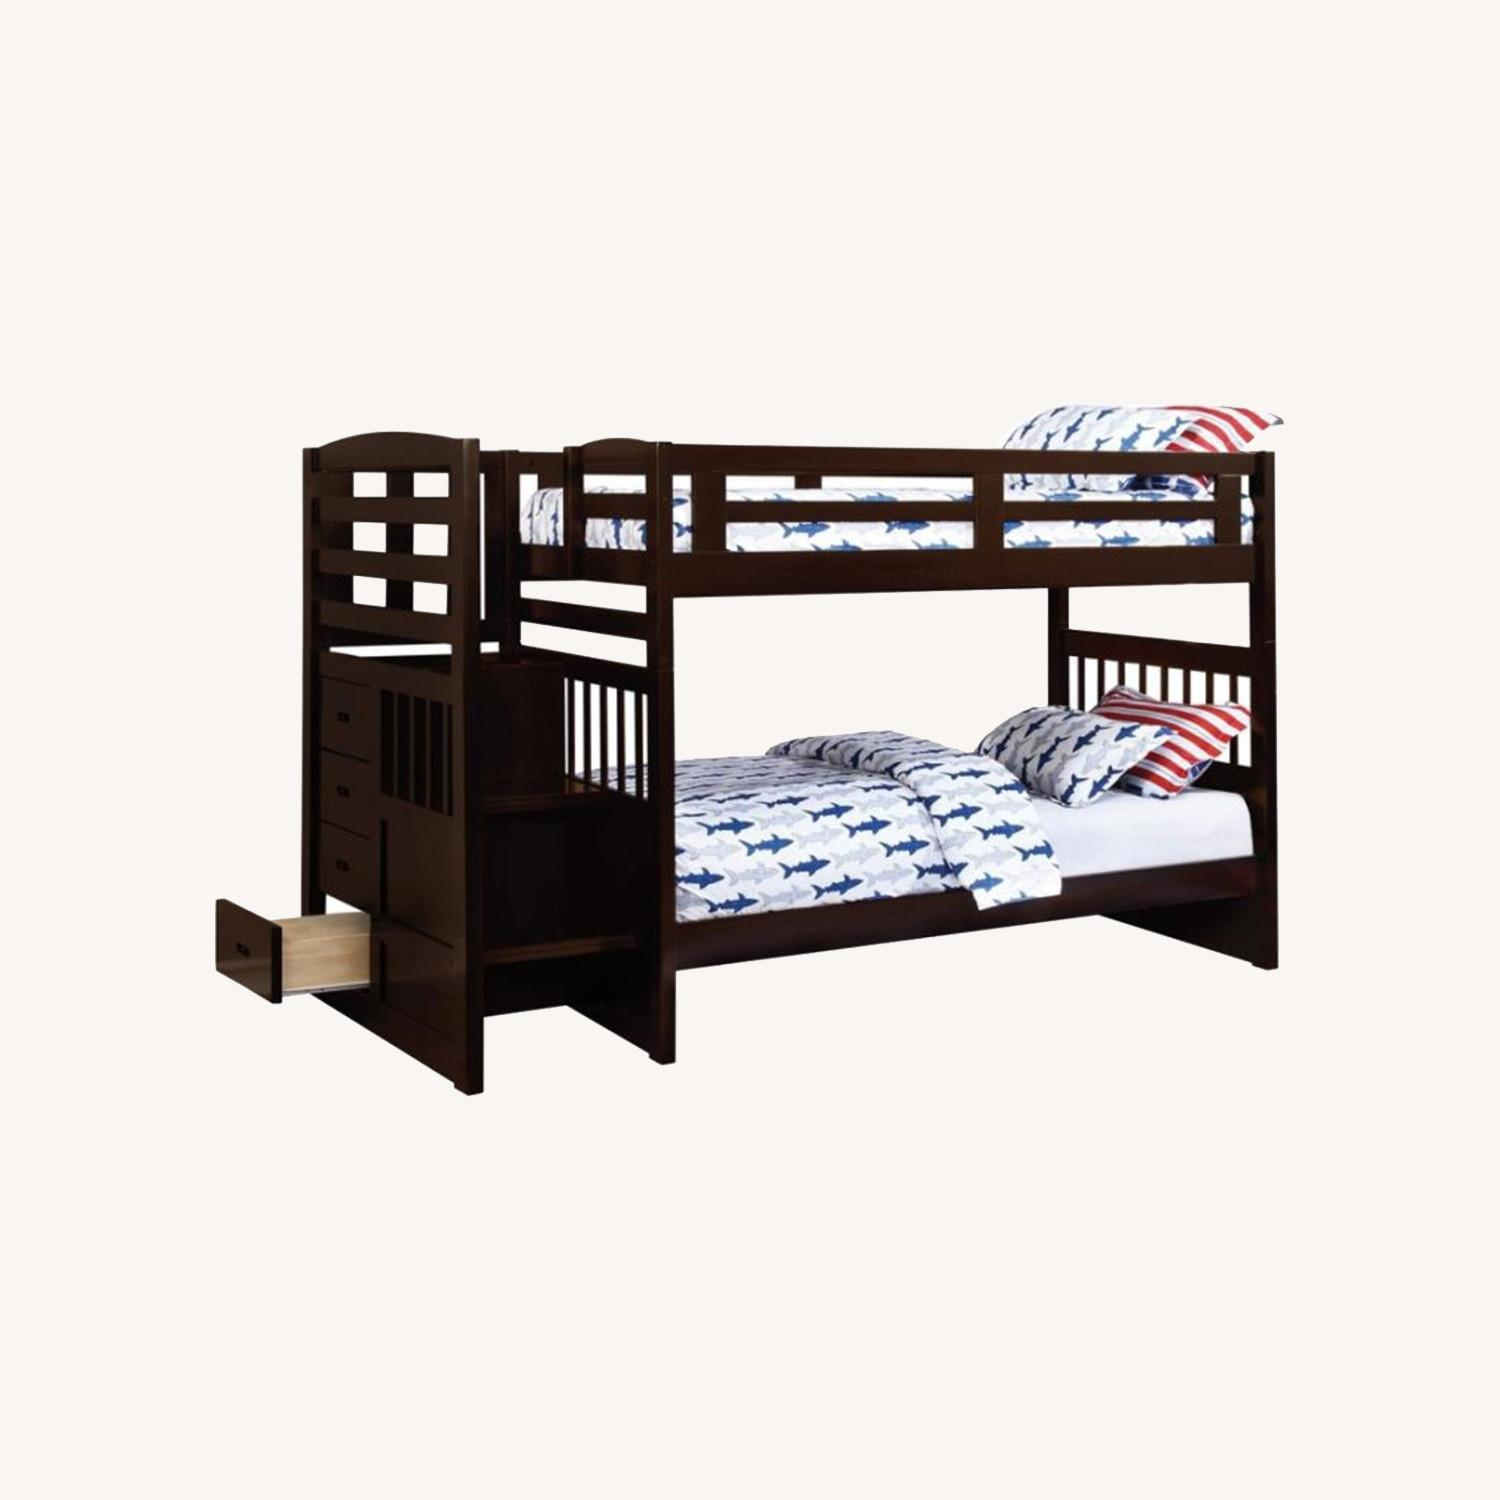 Twin Bunk Bed In Cappuccino W/ Storage Staircase - image-3